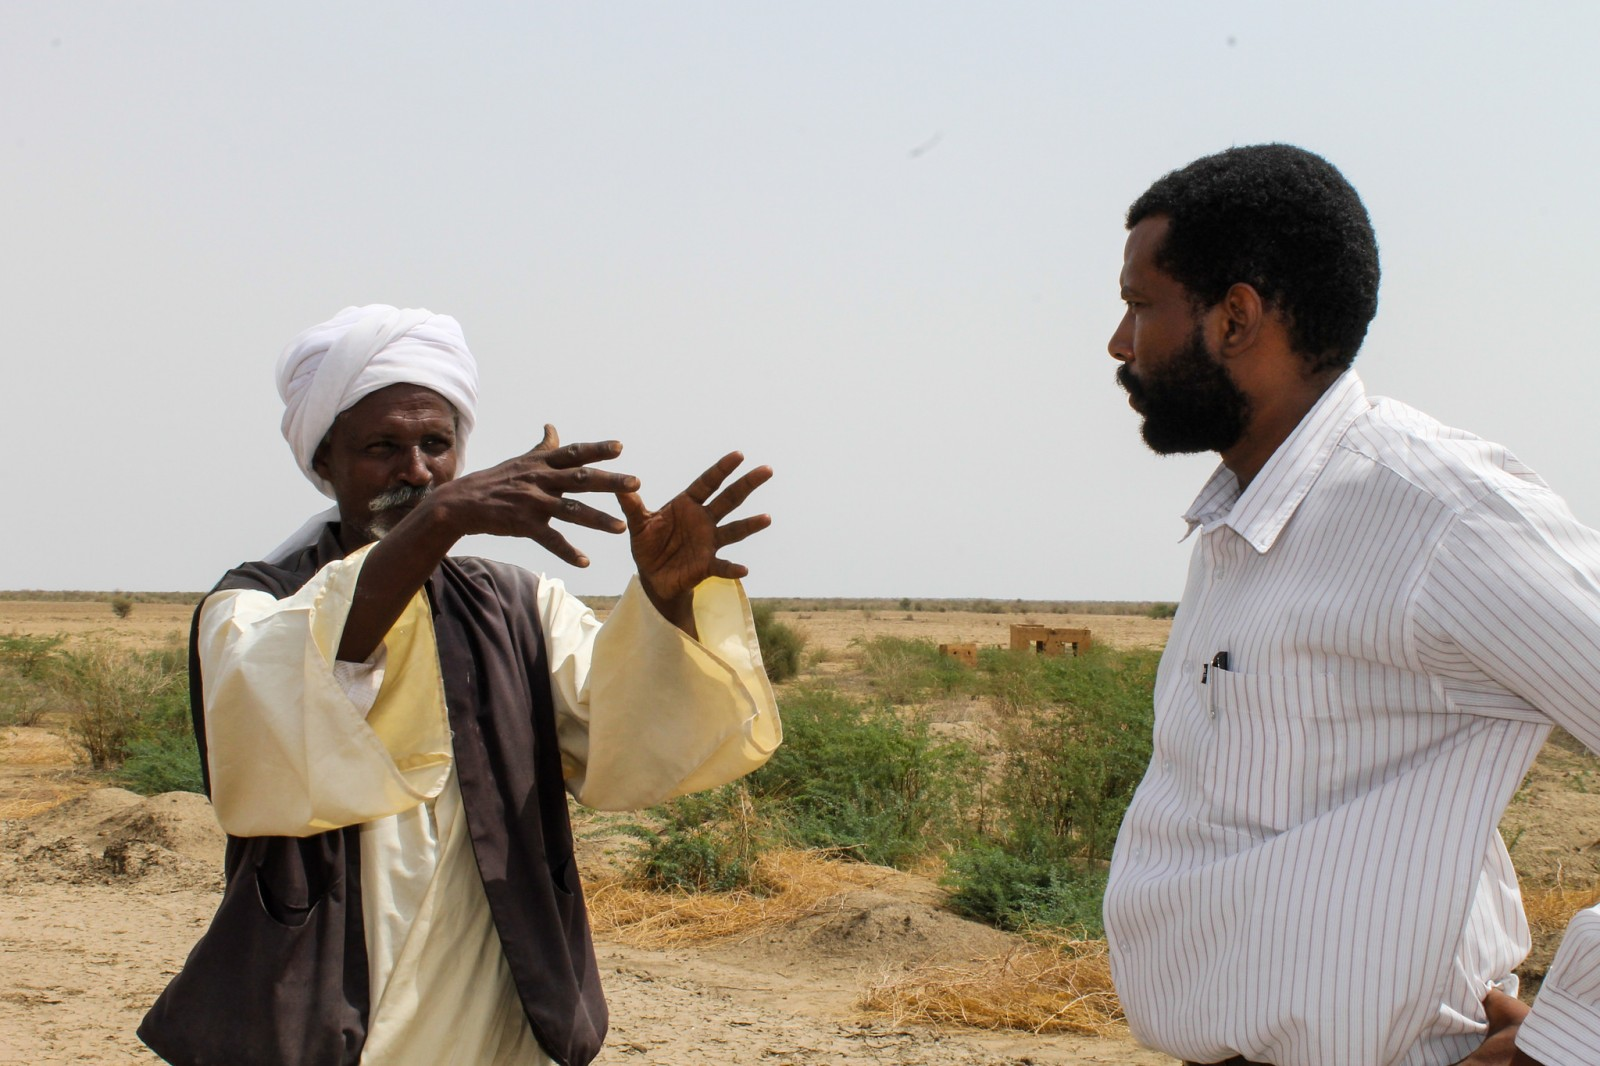 Community leader and researcher discuss local challenges in Gash Die, Sudan.